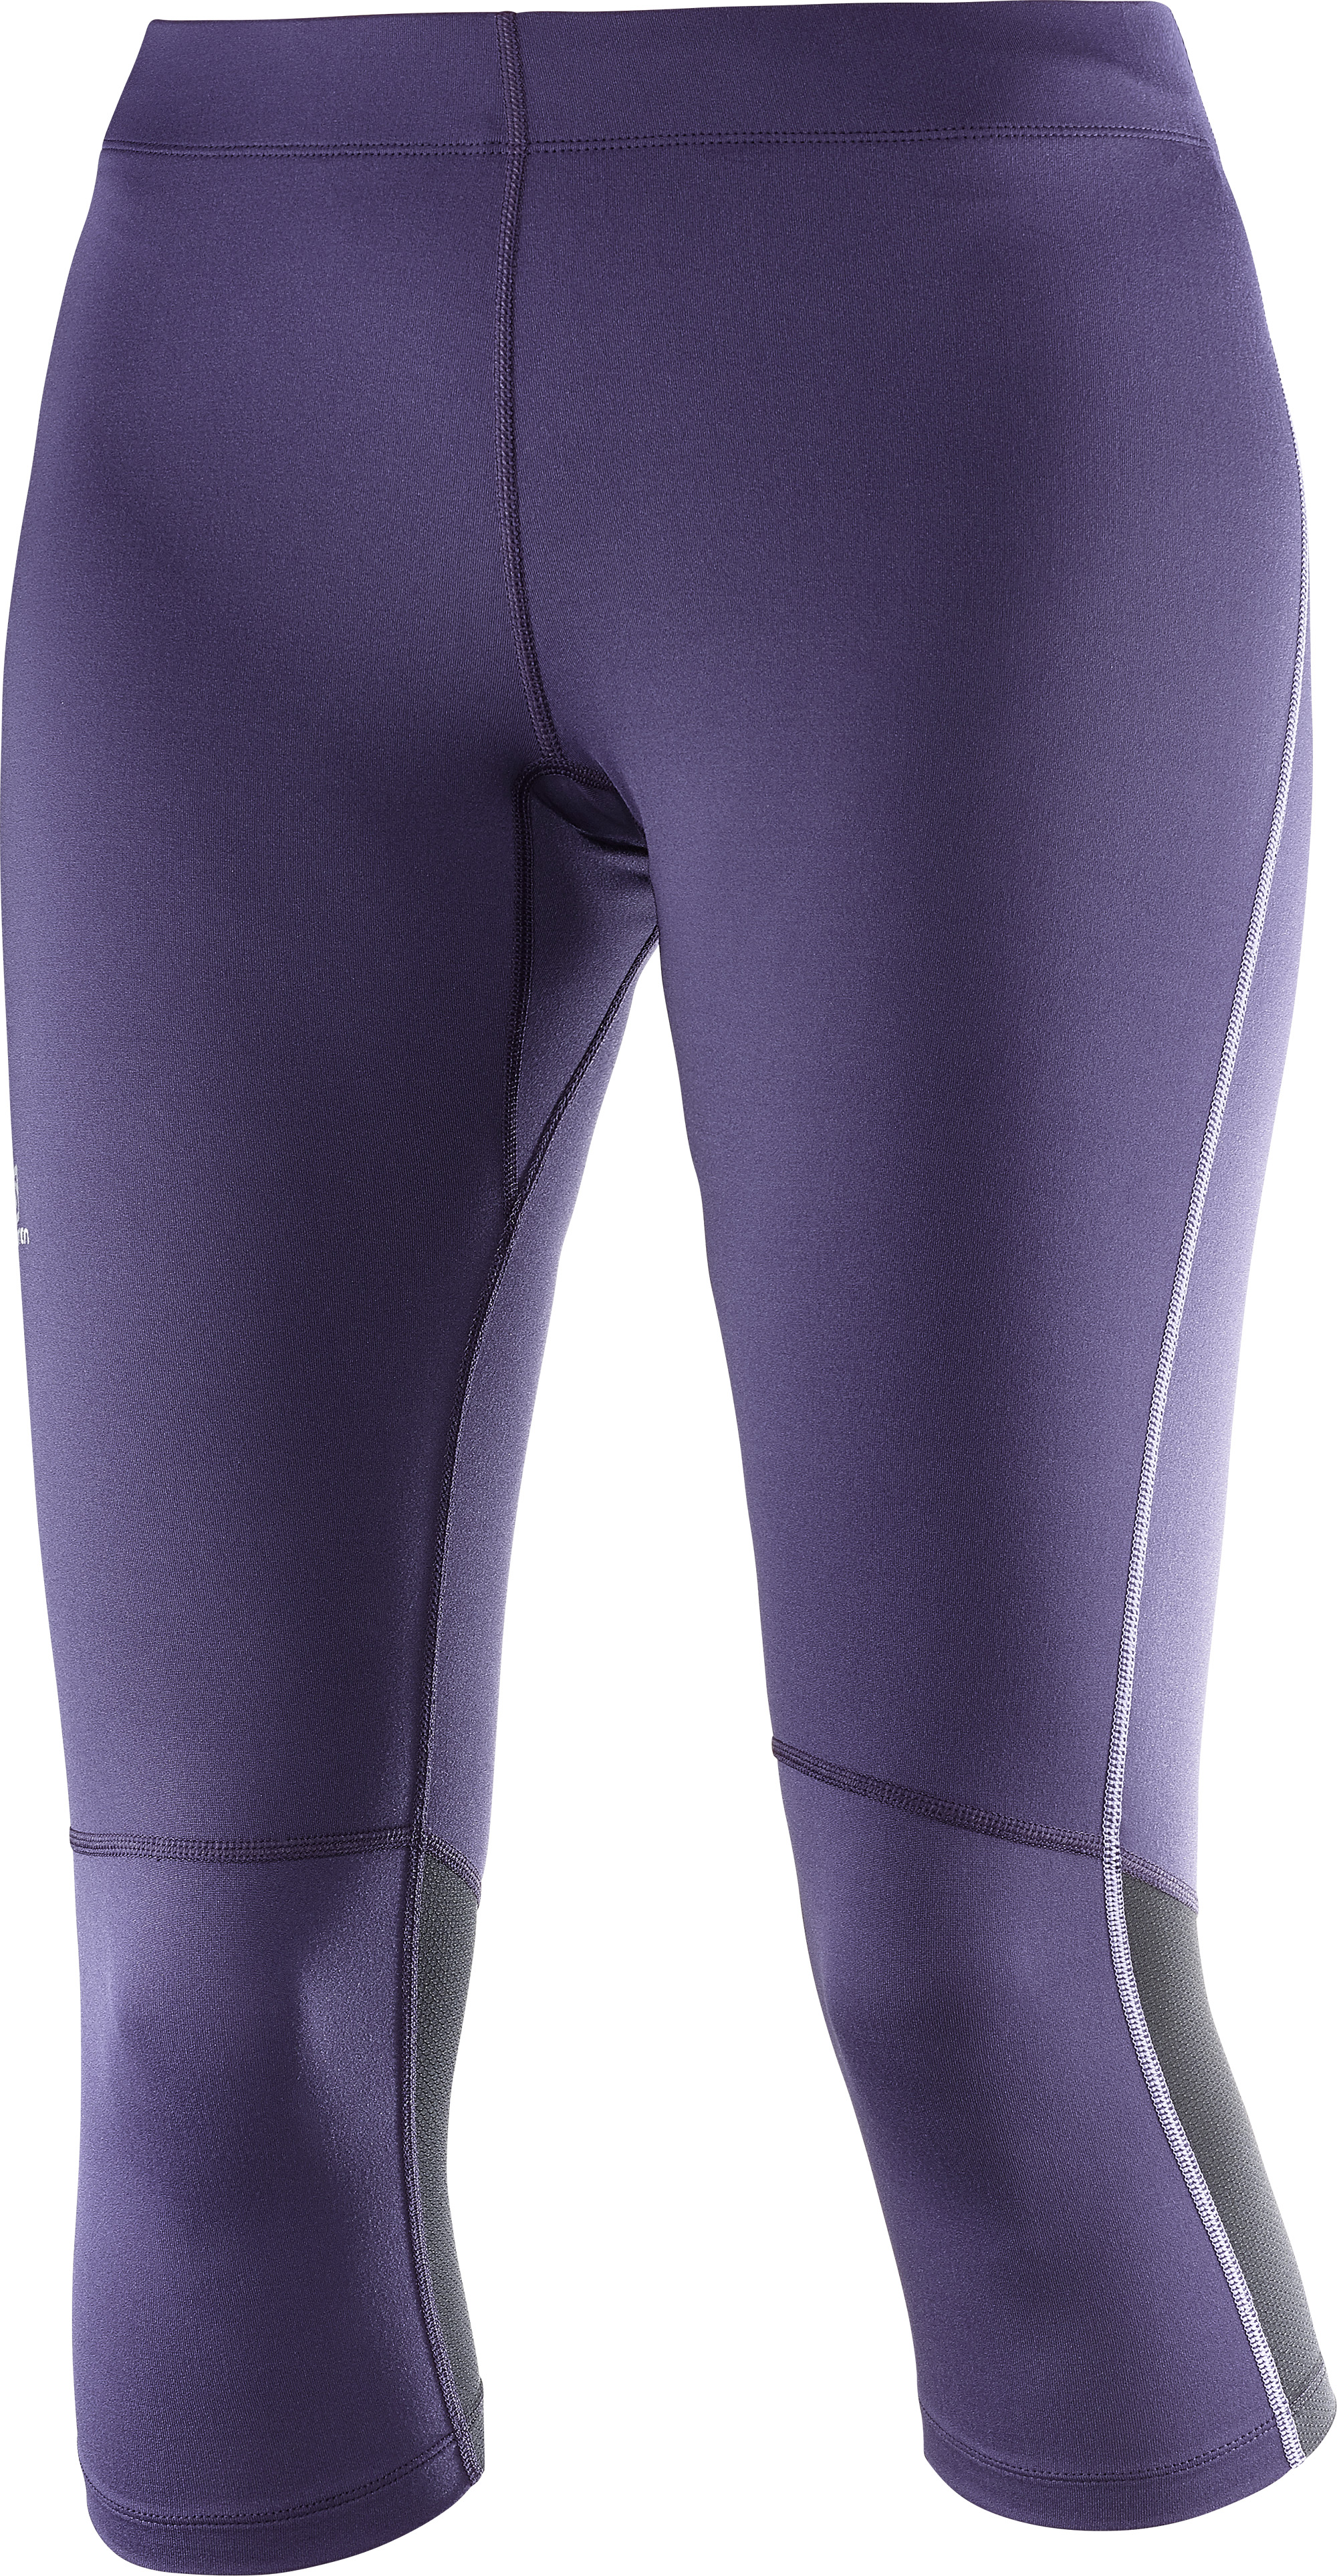 Salomon Agile 3/4 Tight W 393782 fialová M